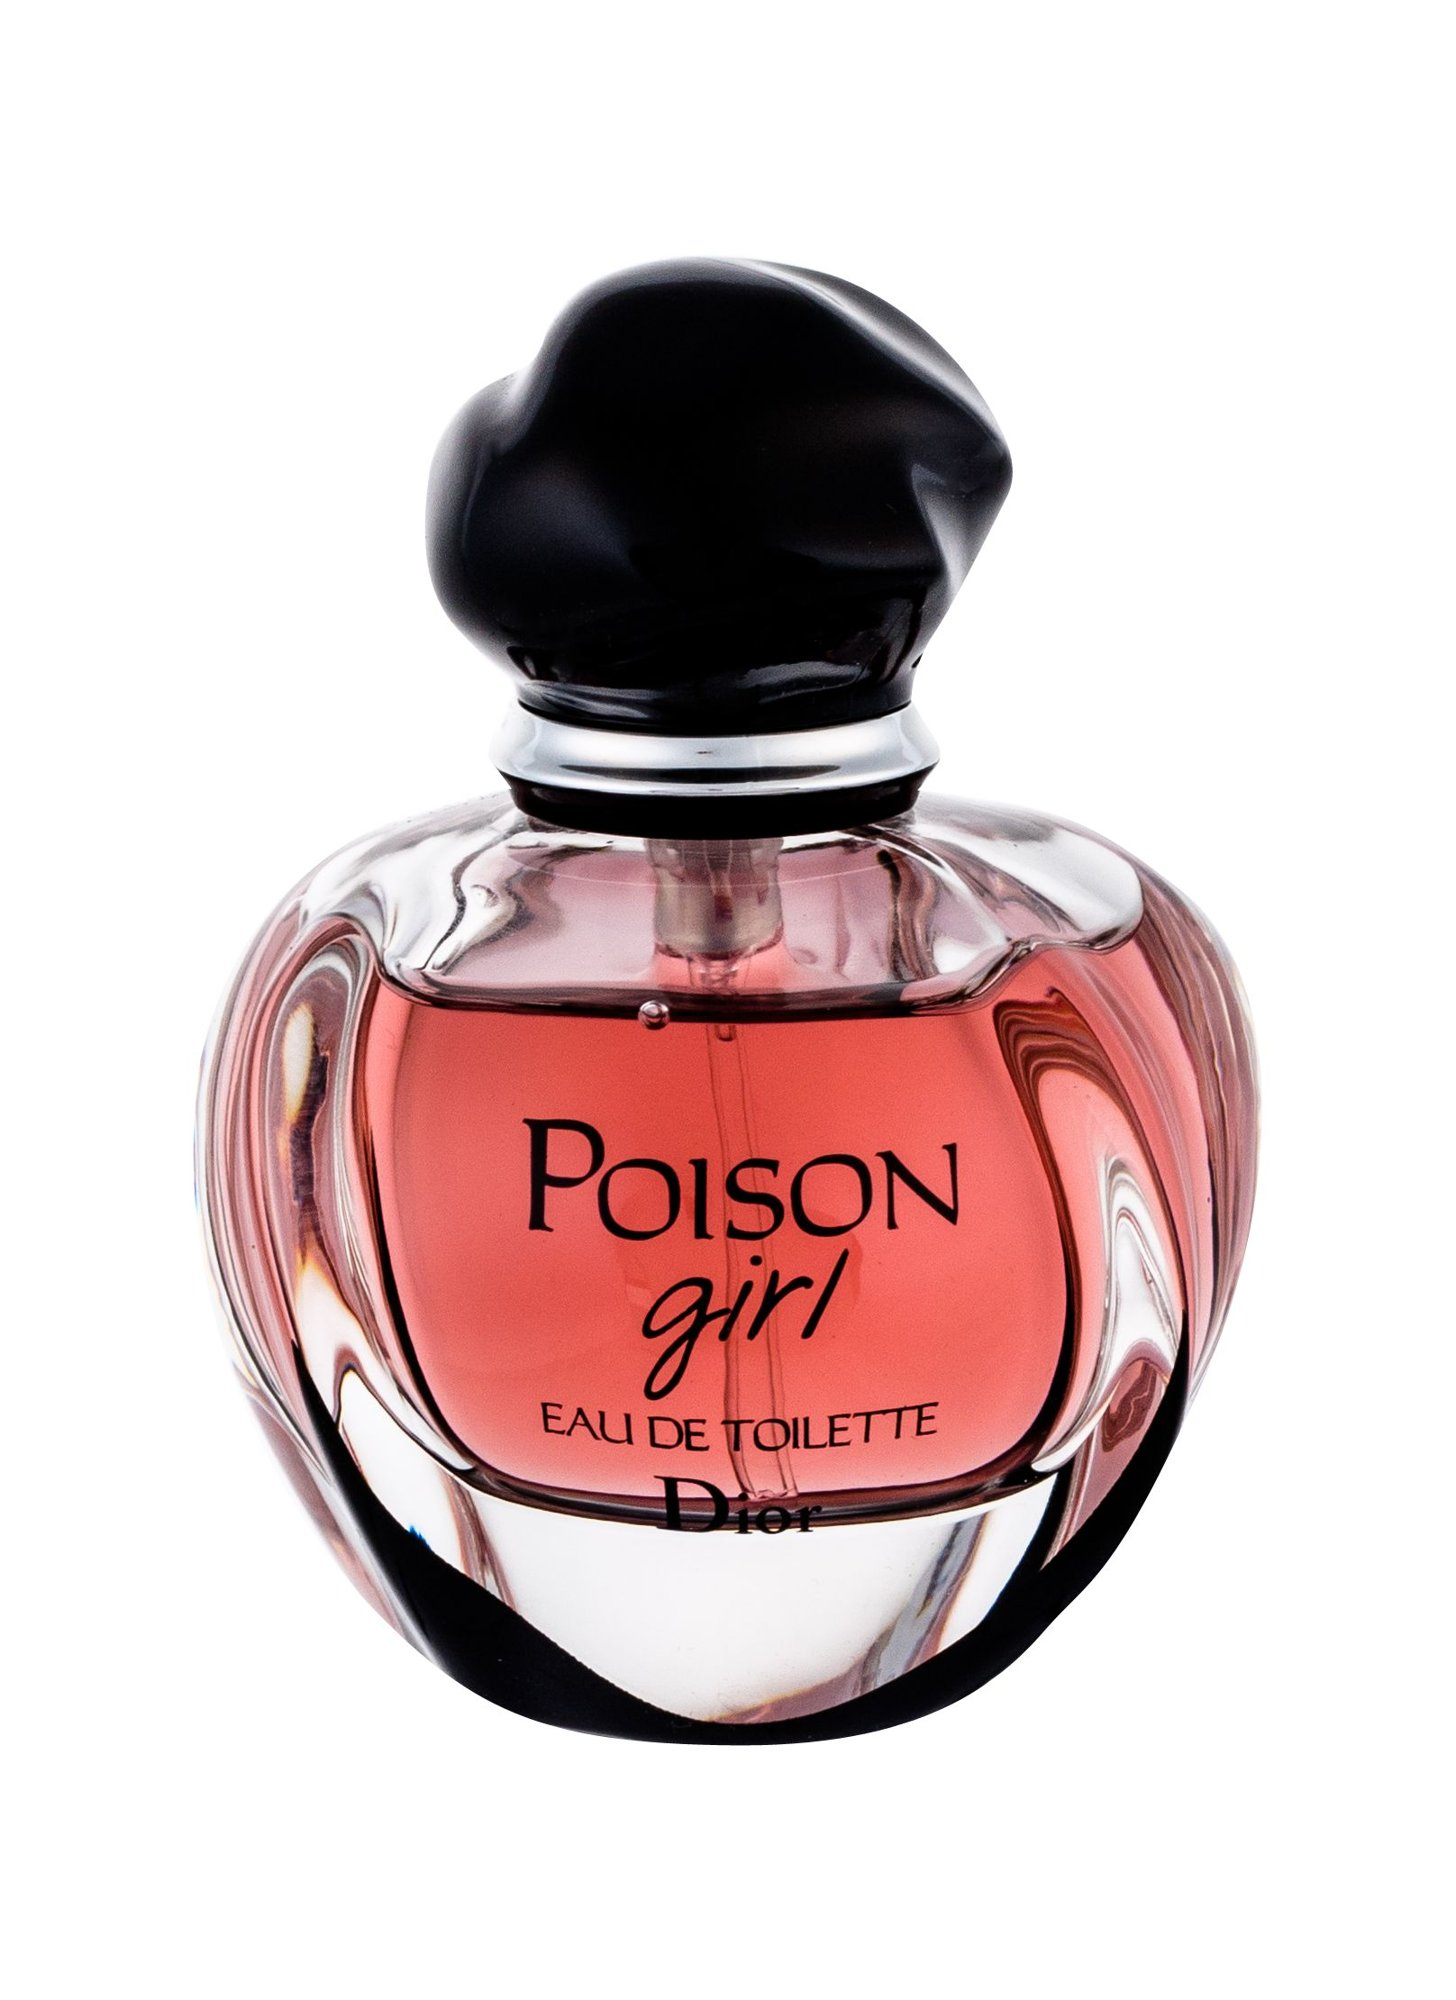 Christian Dior Poison Girl Eau de Toilette 30ml